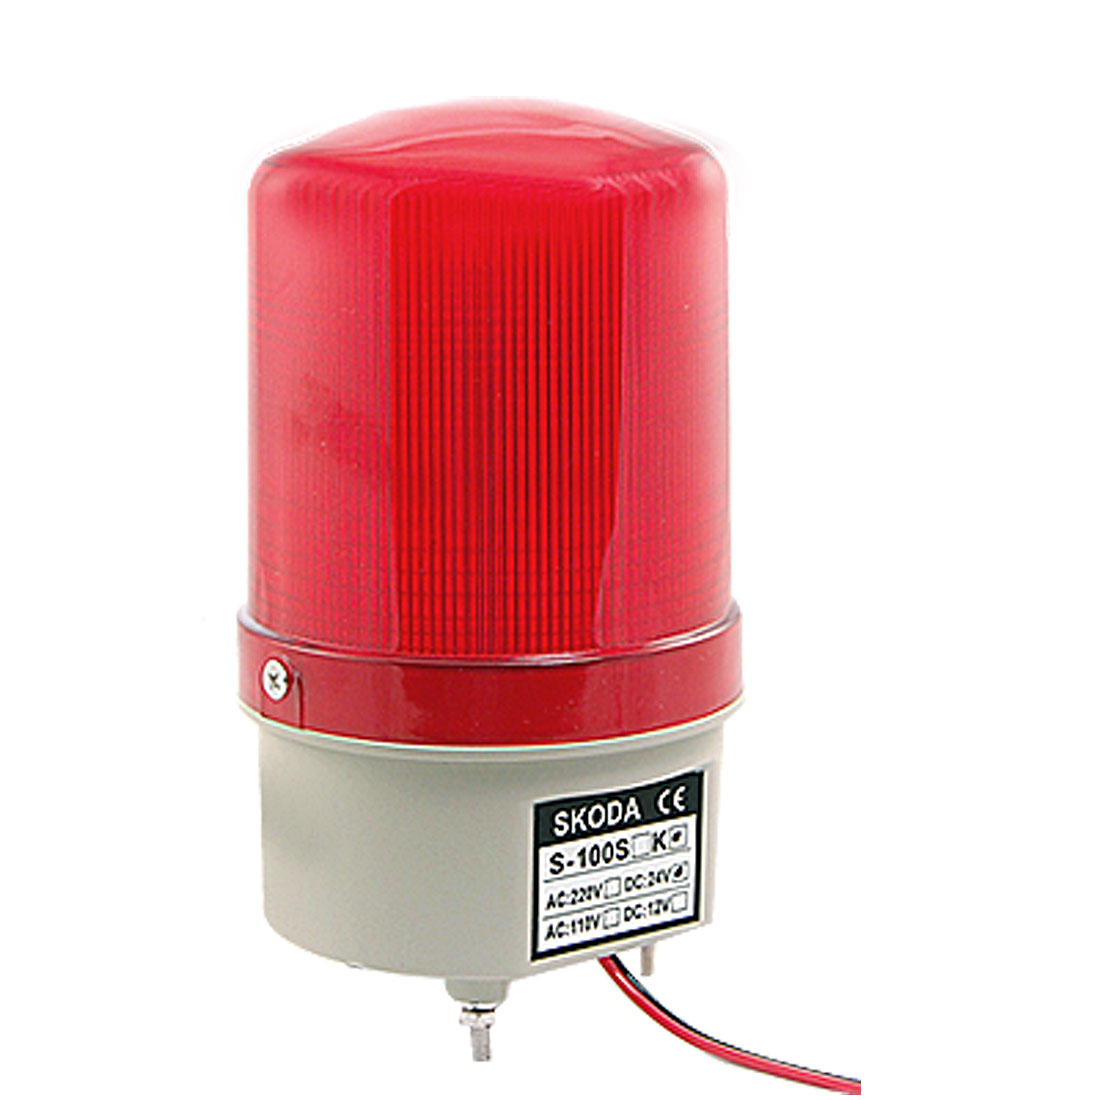 DC 24V Red Flash LED Industrial Signal Buzzer Sound Alarm Light 90dB